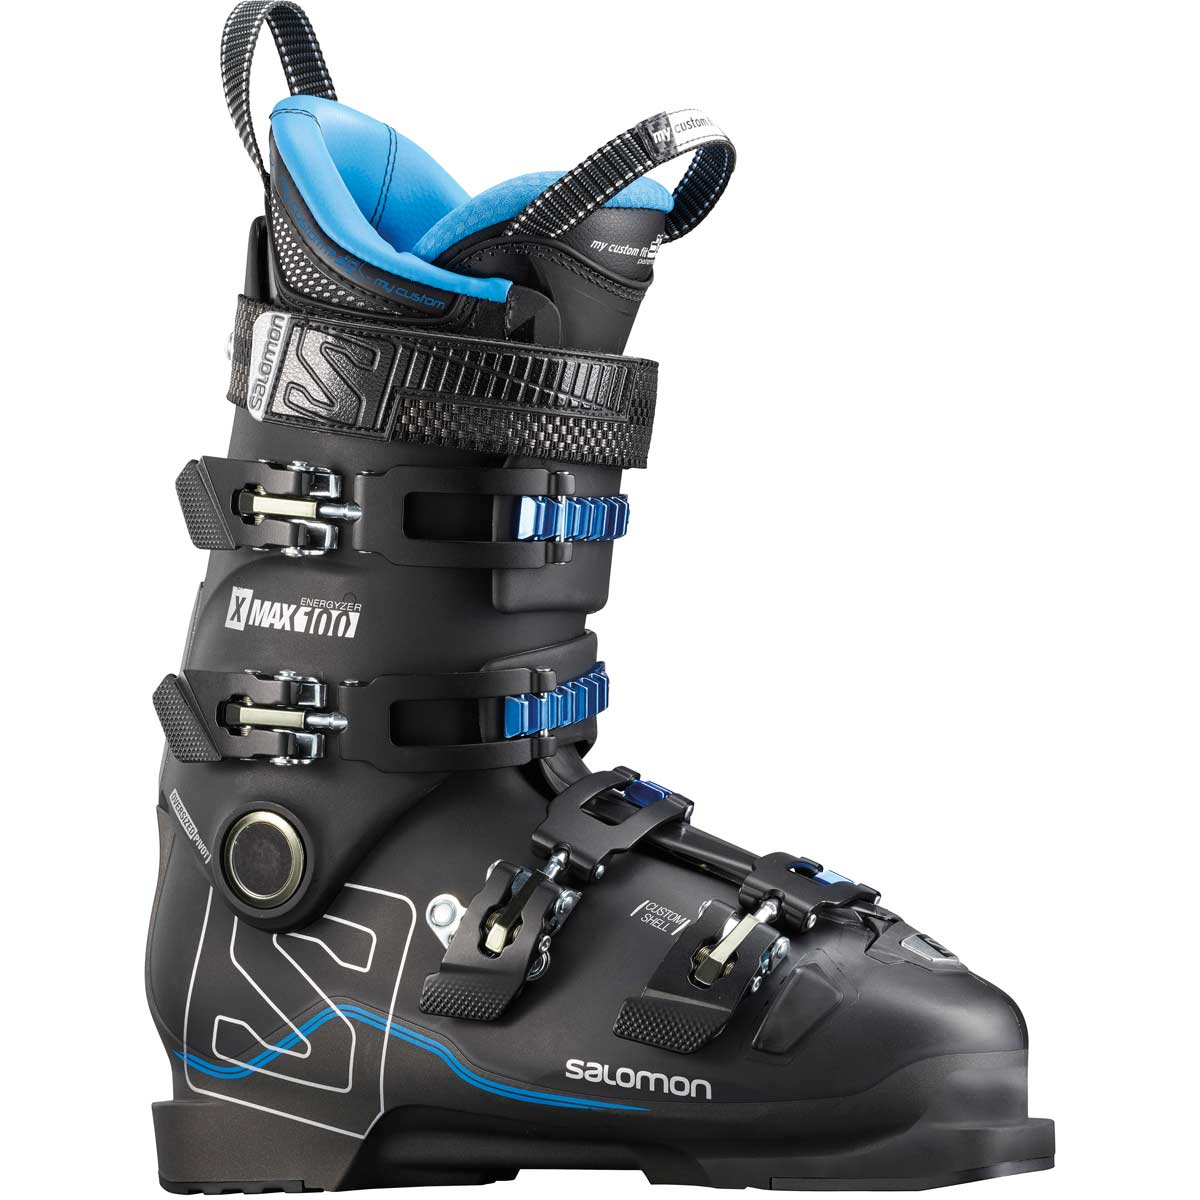 Salomon Men S X Max 100 Ski Boots On Sale Powder7 Com